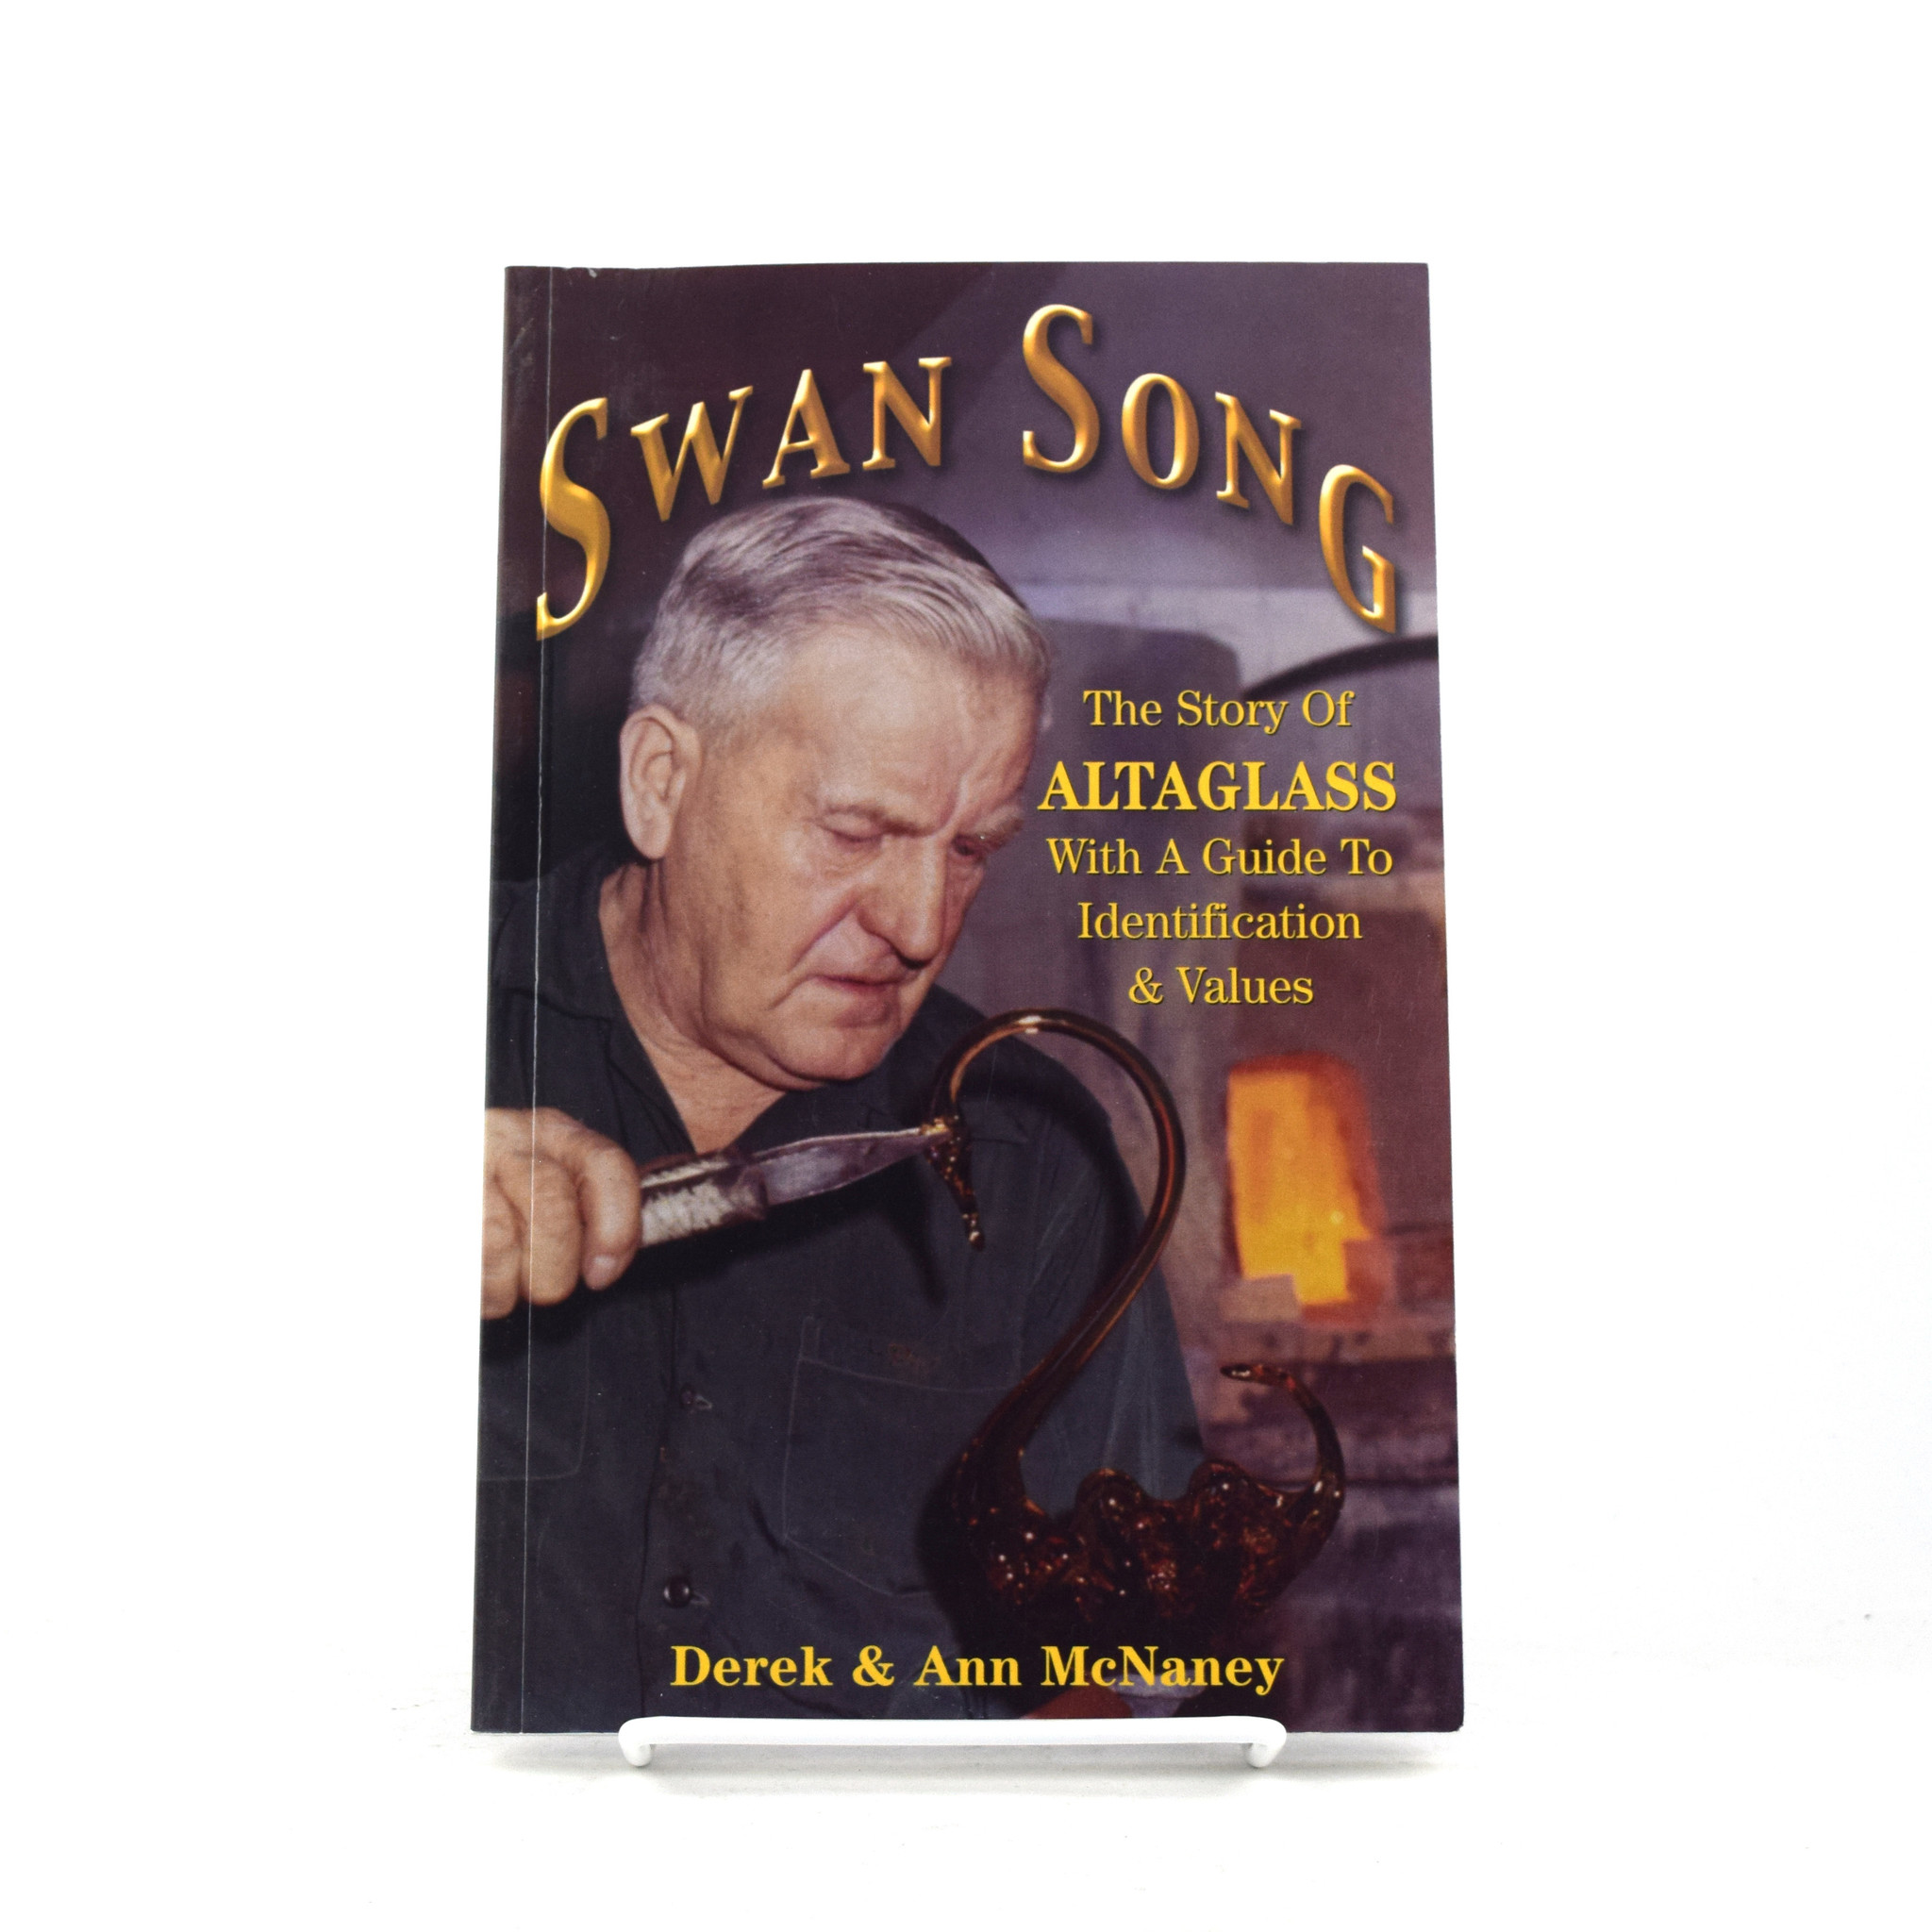 Swan Song: The Story of Altaglass with a Guide to Identification & Values